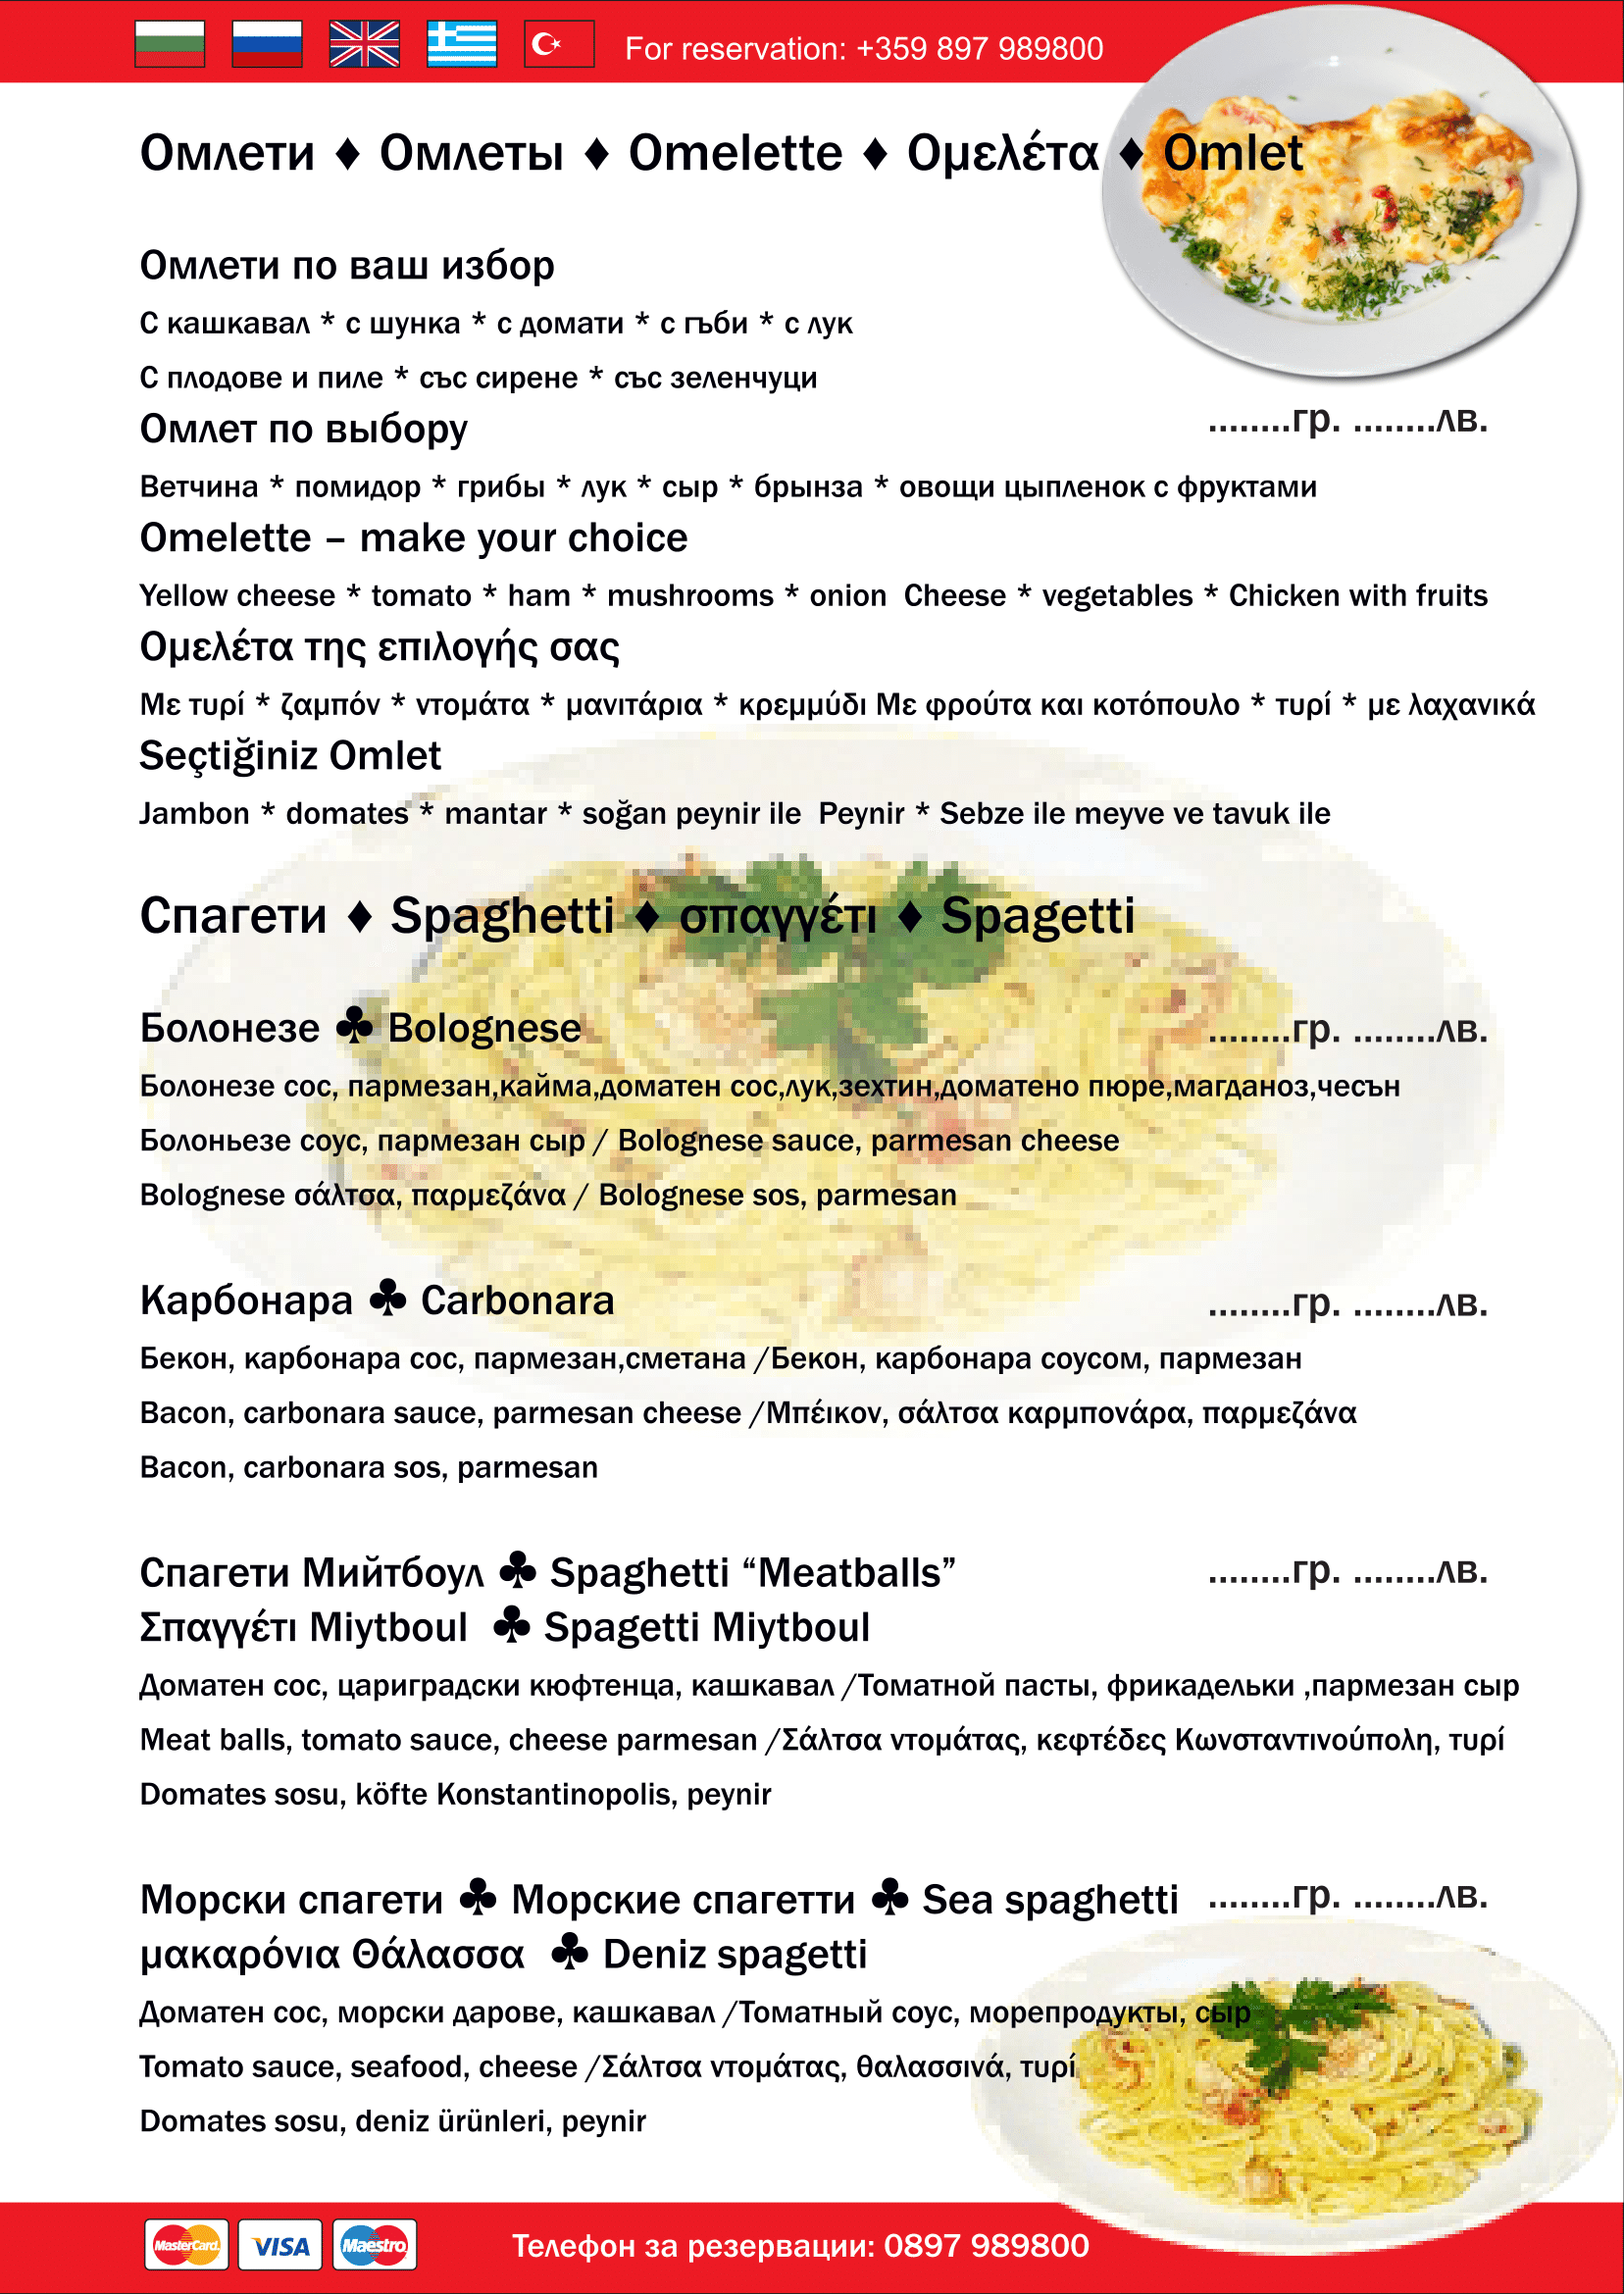 menu_restaurant_restorant_panorama_pamporovo_09